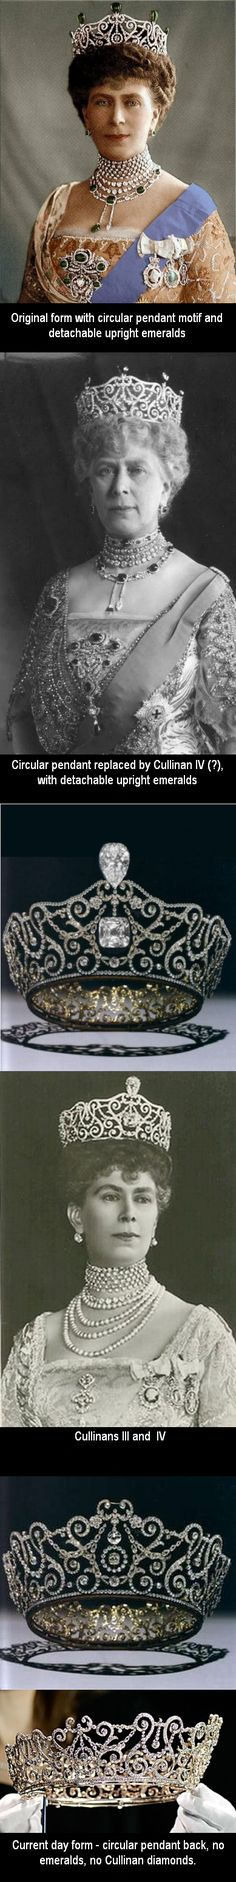 """The Delhi Durbar Tiara - by Garrards, for Queen Mary for the Delhi Durbar on December 12,1911. Durbar is Hindi, for a 'ceremonial gathering to pay homage'. The gathering was to install King George V and Queen Mary as Emperor and Empress of India. King George V admired this piece and referred to it as """"May's best tiara"""". It has been worn in a variety of  ways as shown here."""